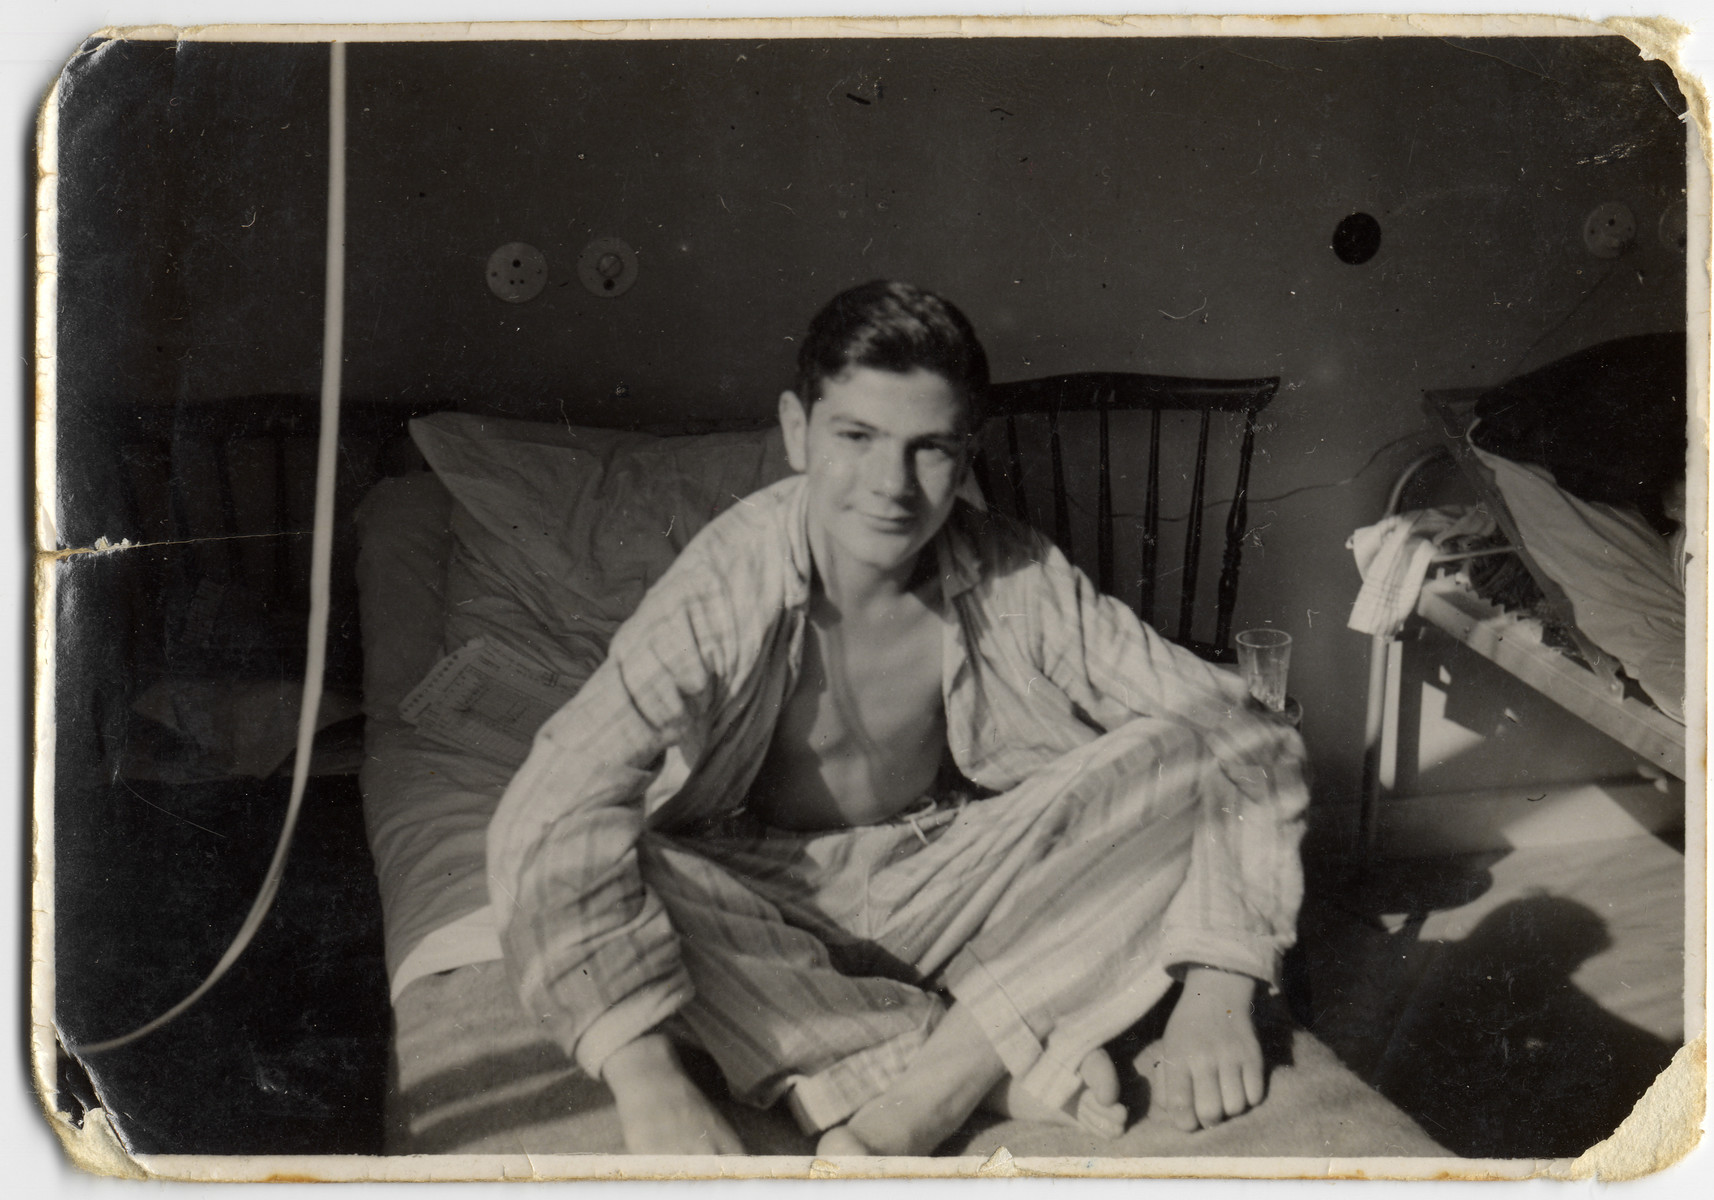 Close-up portrait of Chaim Kozienicki sitting on a hospital bed where he is recuperating in Sweden.